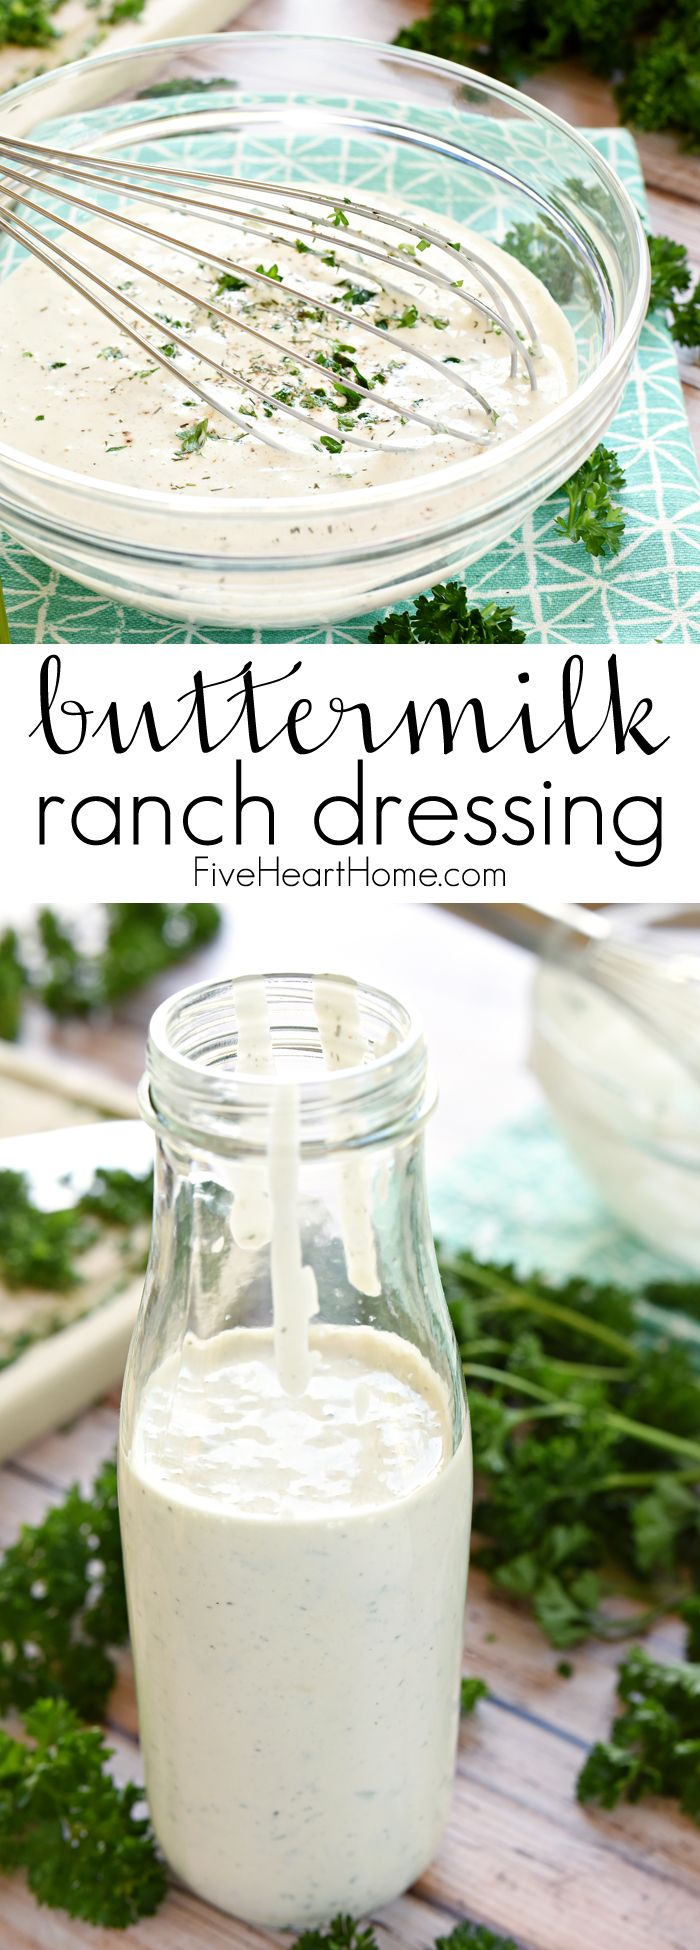 The BEST Homemade Buttermilk Ranch Dressing ~ all-natural, loaded with herbs, simple to make, and so good that you'll never go back to store-bought again! | FiveHeartHome.com